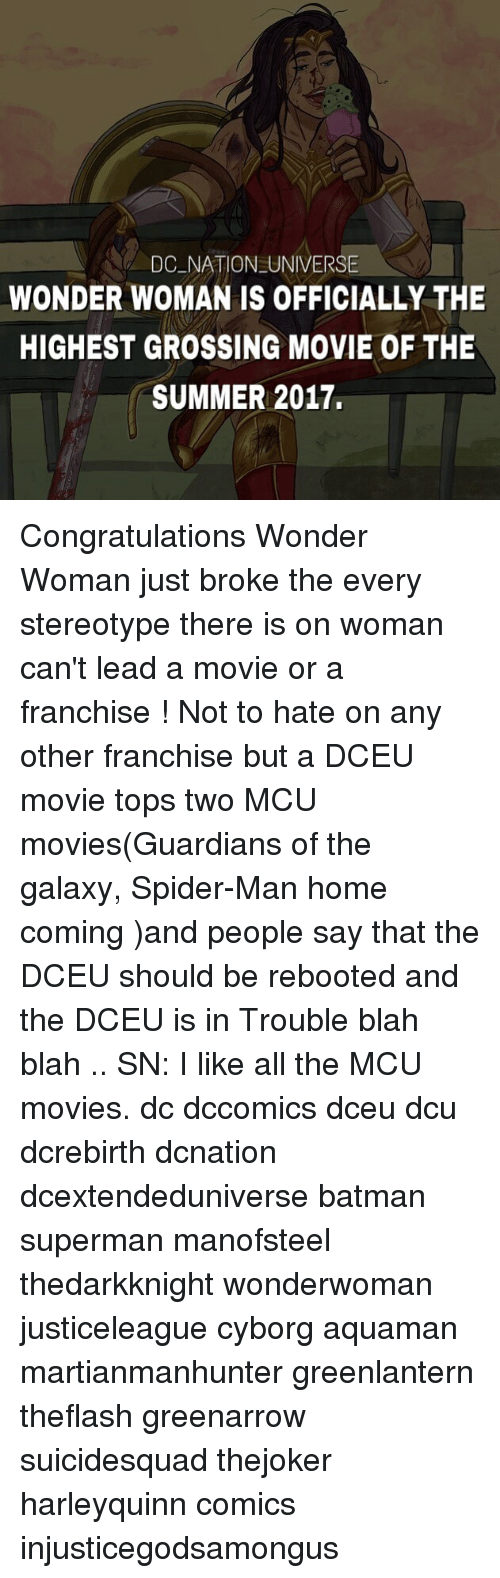 Batman, Memes, and Movies: DC NATION UNIVERSE  WONDER WOMAN IS OFFICIALLY THE  HIGHEST GROSSING MOVIE OF THE  SUMMER 2017. Congratulations Wonder Woman just broke the every stereotype there is on woman can't lead a movie or a franchise ! Not to hate on any other franchise but a DCEU movie tops two MCU movies(Guardians of the galaxy, Spider-Man home coming )and people say that the DCEU should be rebooted and the DCEU is in Trouble blah blah .. SN: I like all the MCU movies. dc dccomics dceu dcu dcrebirth dcnation dcextendeduniverse batman superman manofsteel thedarkknight wonderwoman justiceleague cyborg aquaman martianmanhunter greenlantern theflash greenarrow suicidesquad thejoker harleyquinn comics injusticegodsamongus